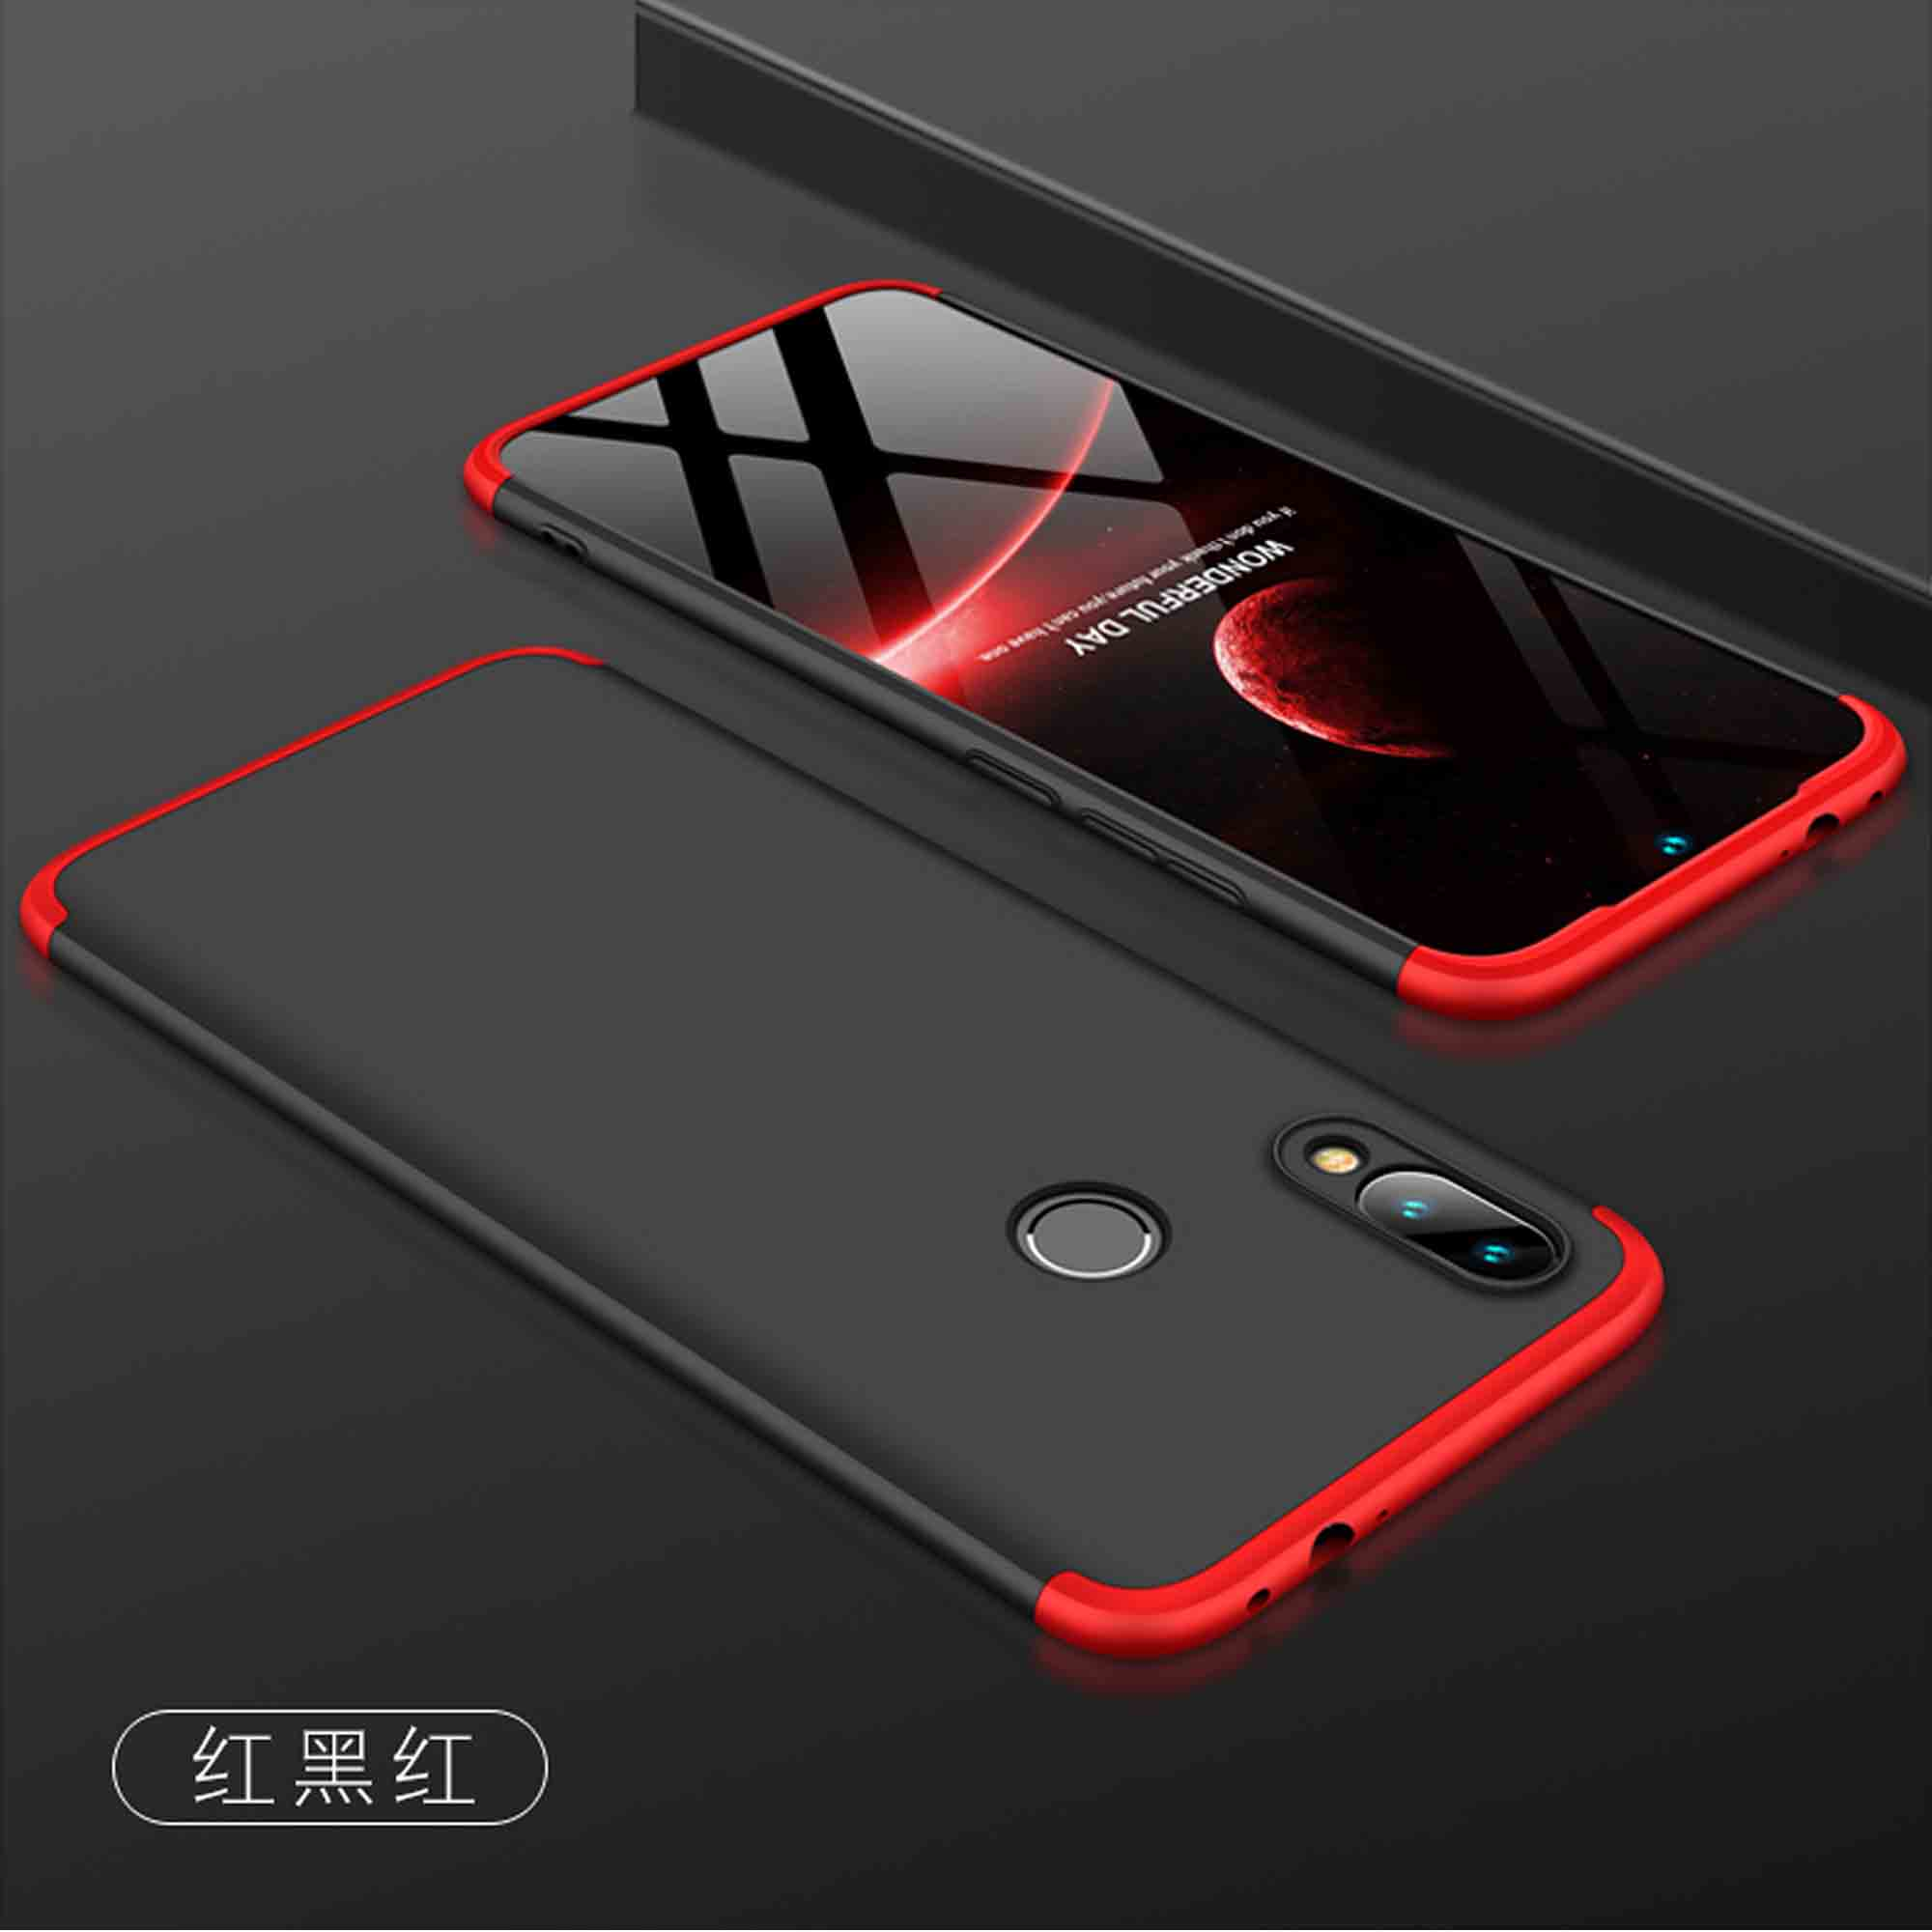 note7 case for Fundas <font><b>Xiaomi</b></font> <font><b>Redmi</b></font> Note <font><b>7</b></font> <font><b>cover</b></font> Hard 3 in 1 Matte Armor Hybrid Shell for <font><b>xiaomi</b></font> <font><b>Redmi</b></font> <font><b>7</b></font> 7A <font><b>7</b></font> A redmi7 <font><b>Back</b></font> <font><b>Cover</b></font> image